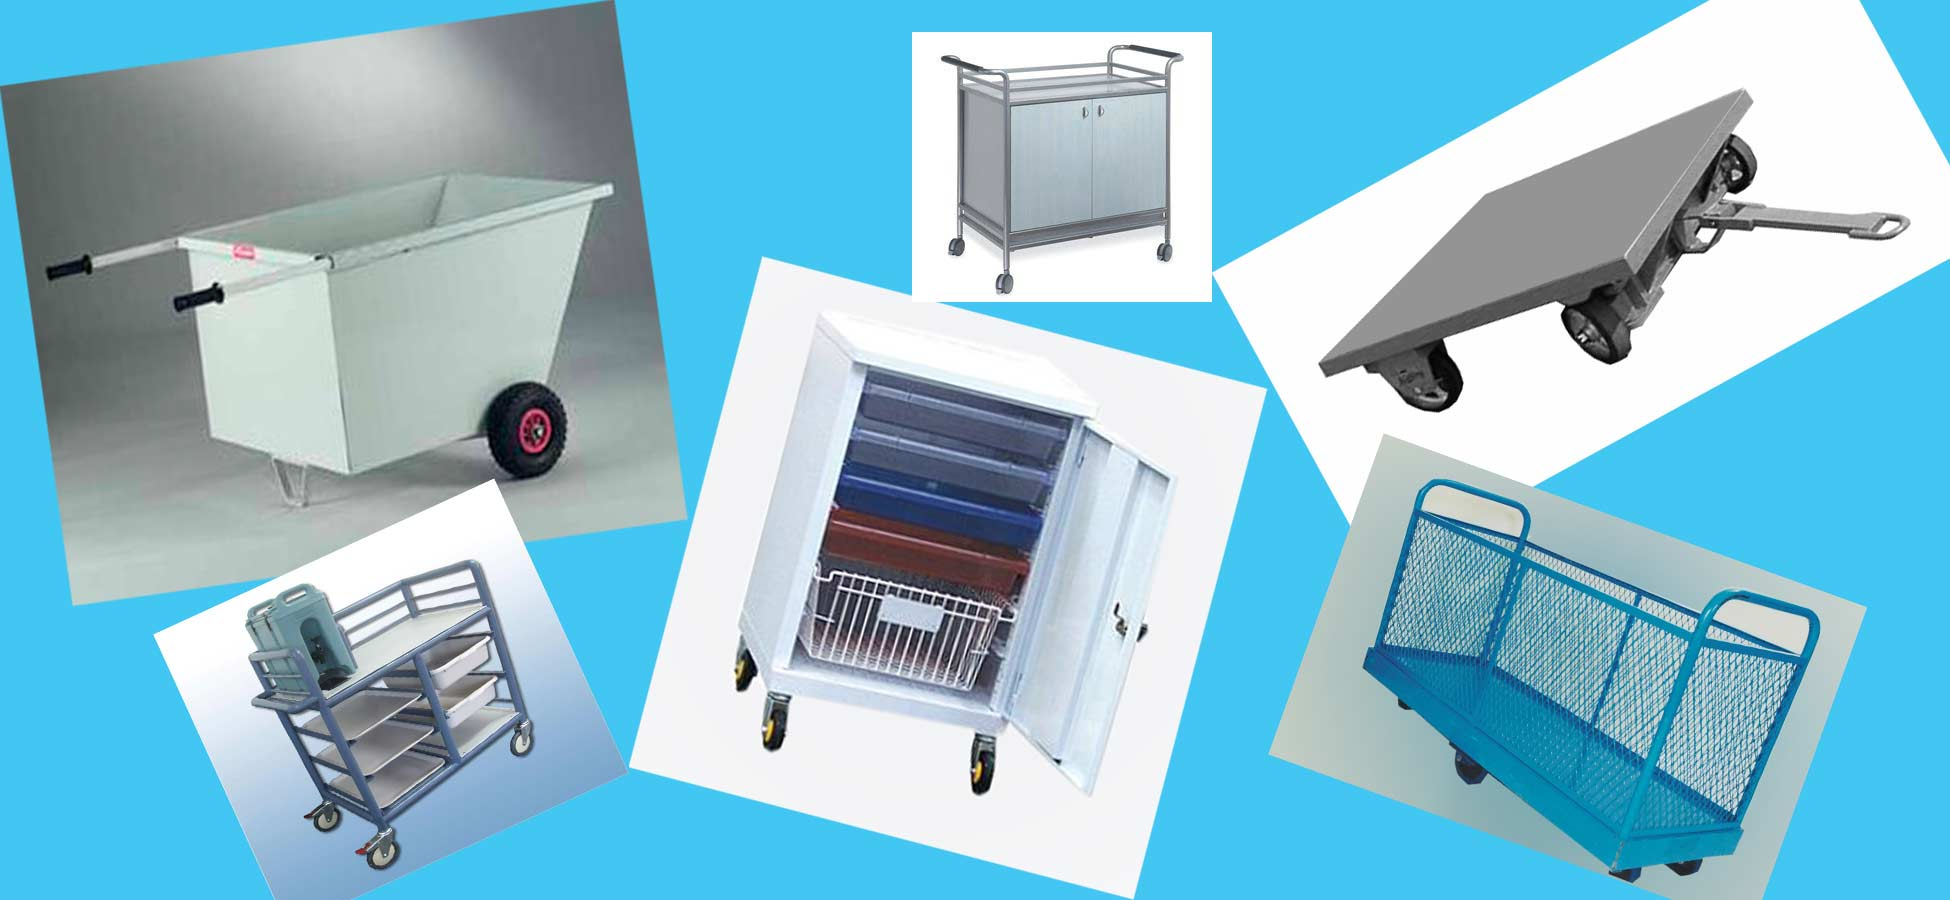 industrial shed manufacturer chennai, steel table manufacturers in chennai, trolley manufacturers chennai, exhaust hood manufacturer chennai, industrial trolley manufacturers chennai